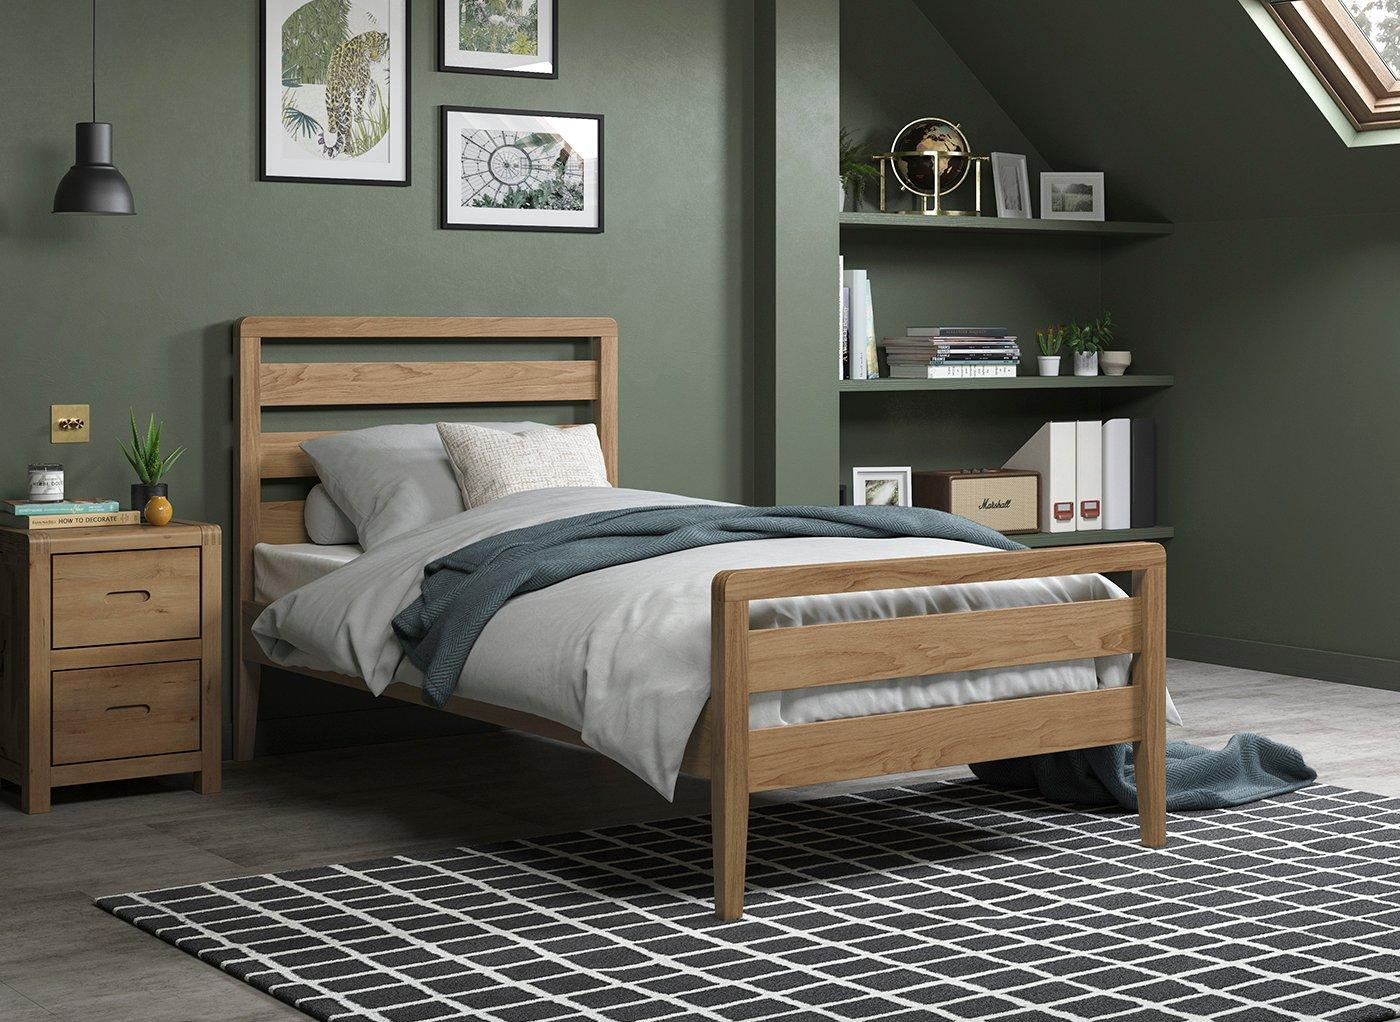 woodstock-wooden-low-rise-bed-frame